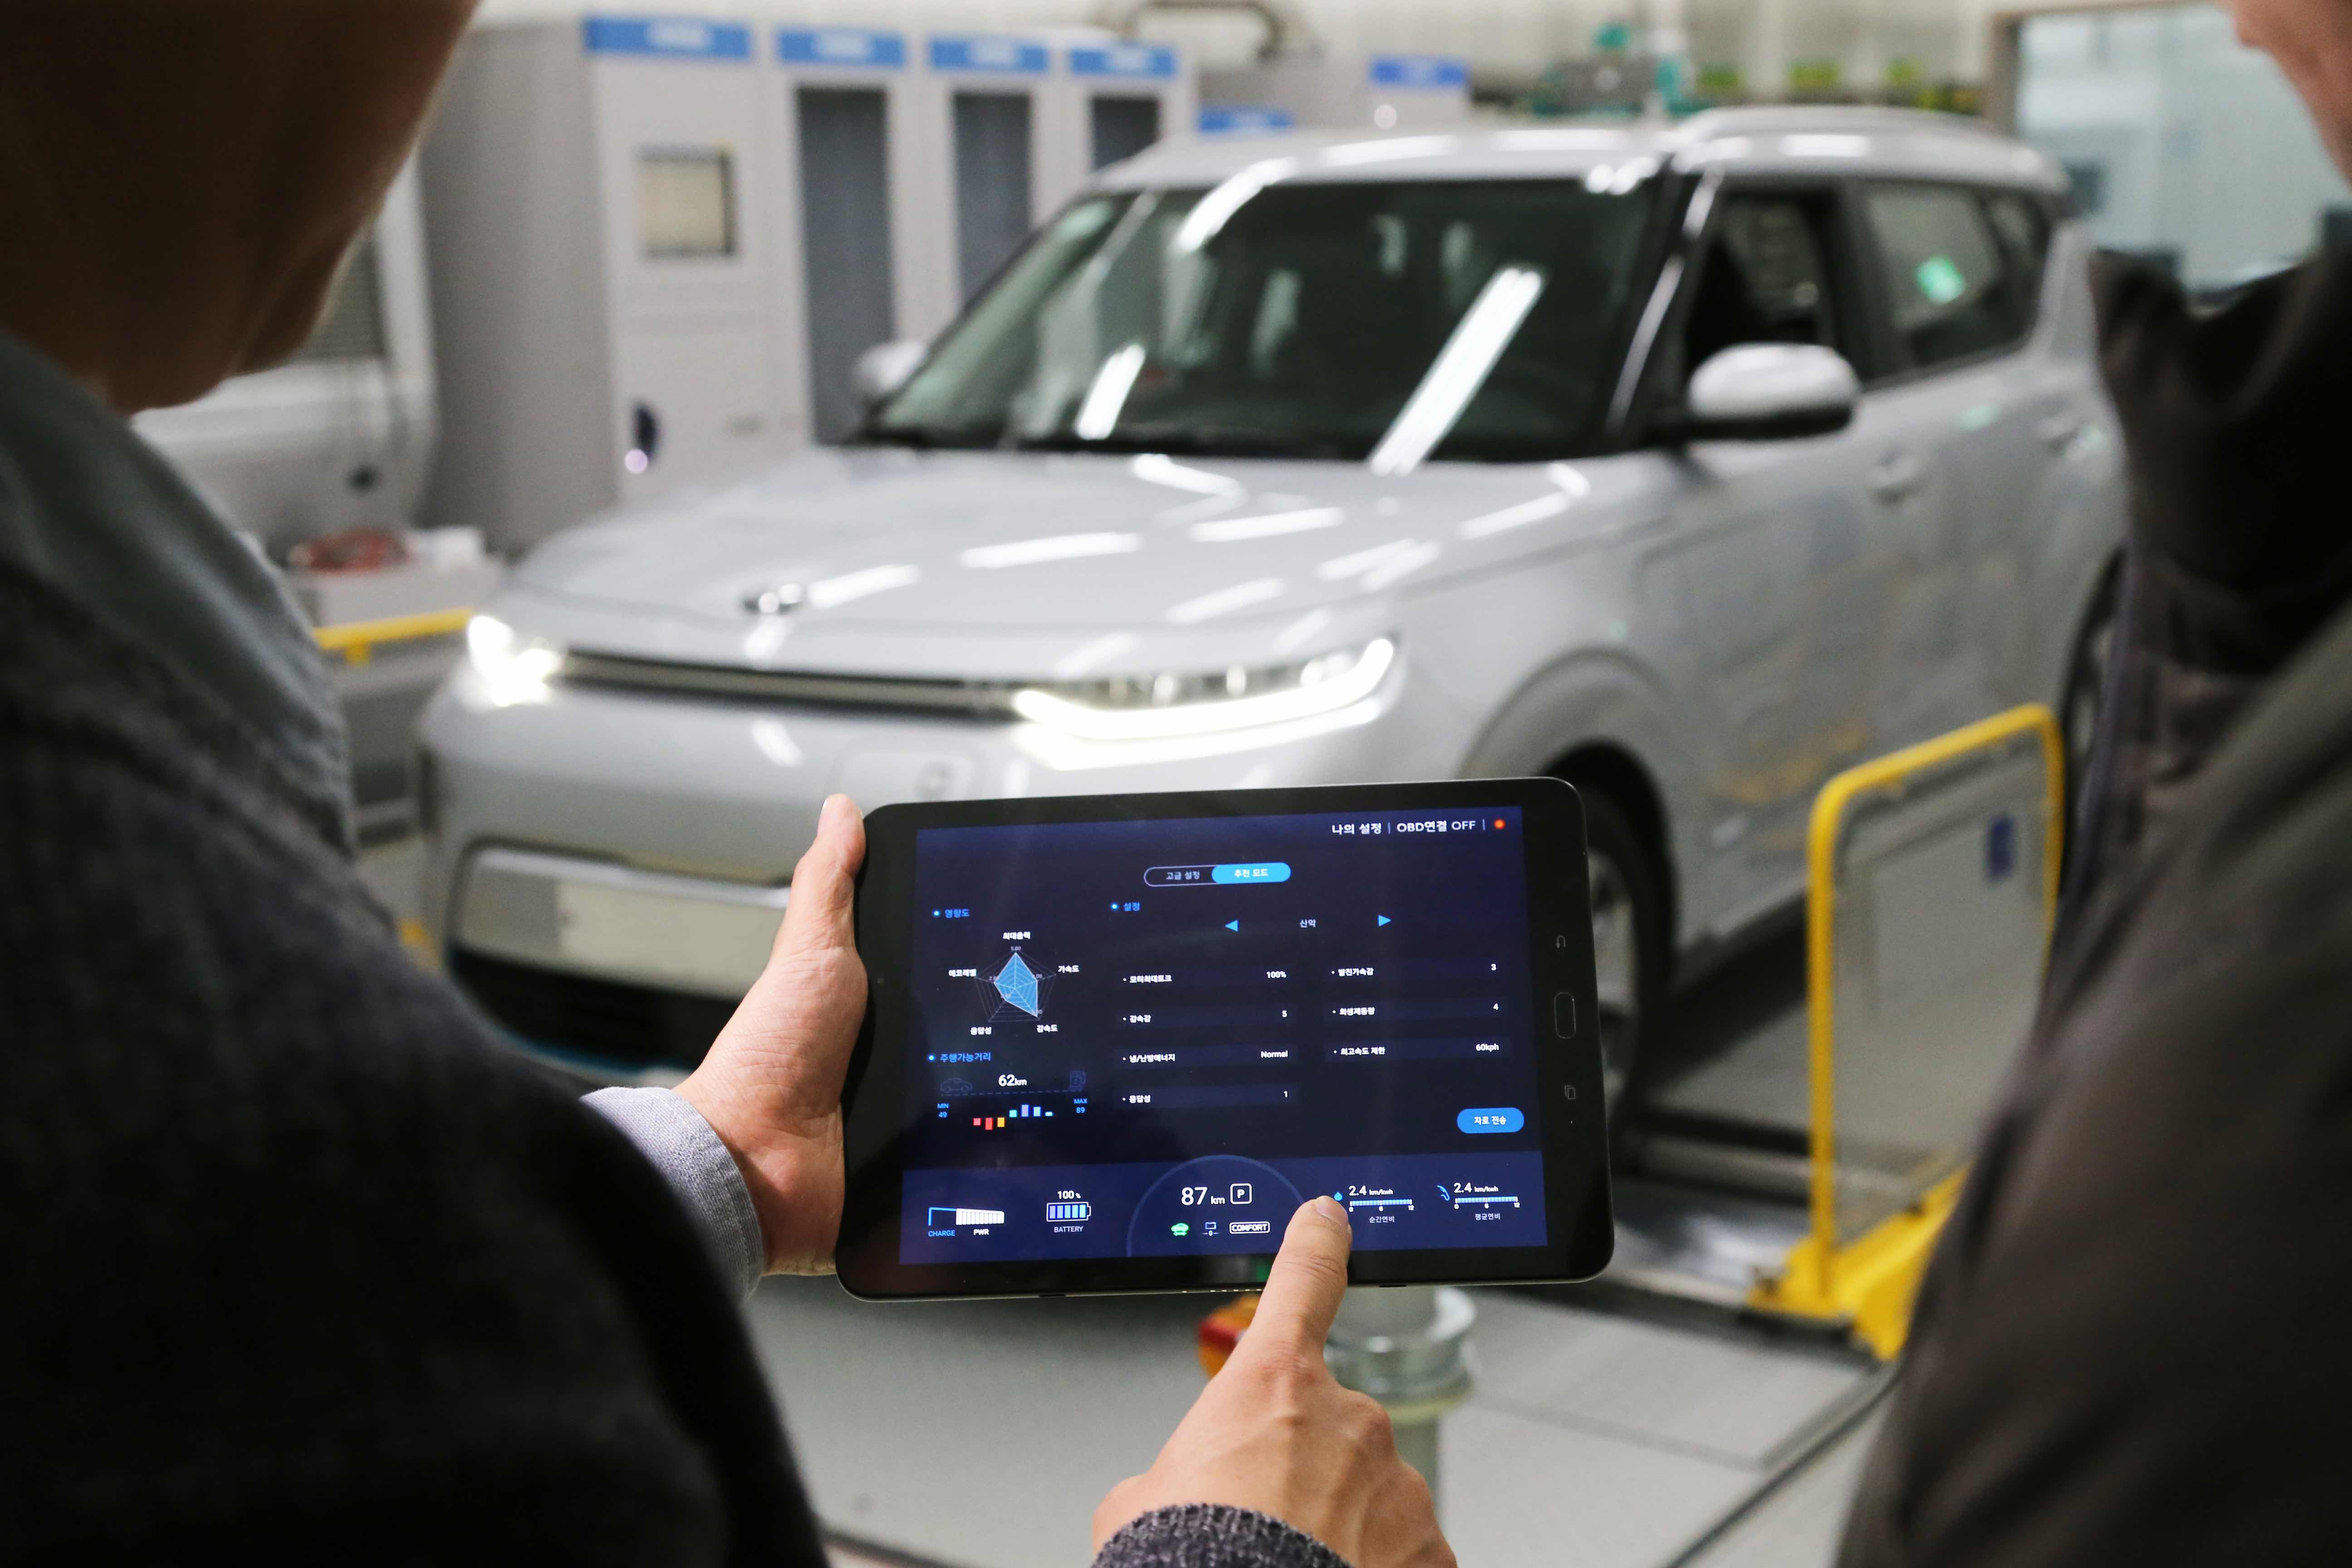 Hyundai Motor Group Introduces Industry-First Smartphone Based EV Performance Control Technology